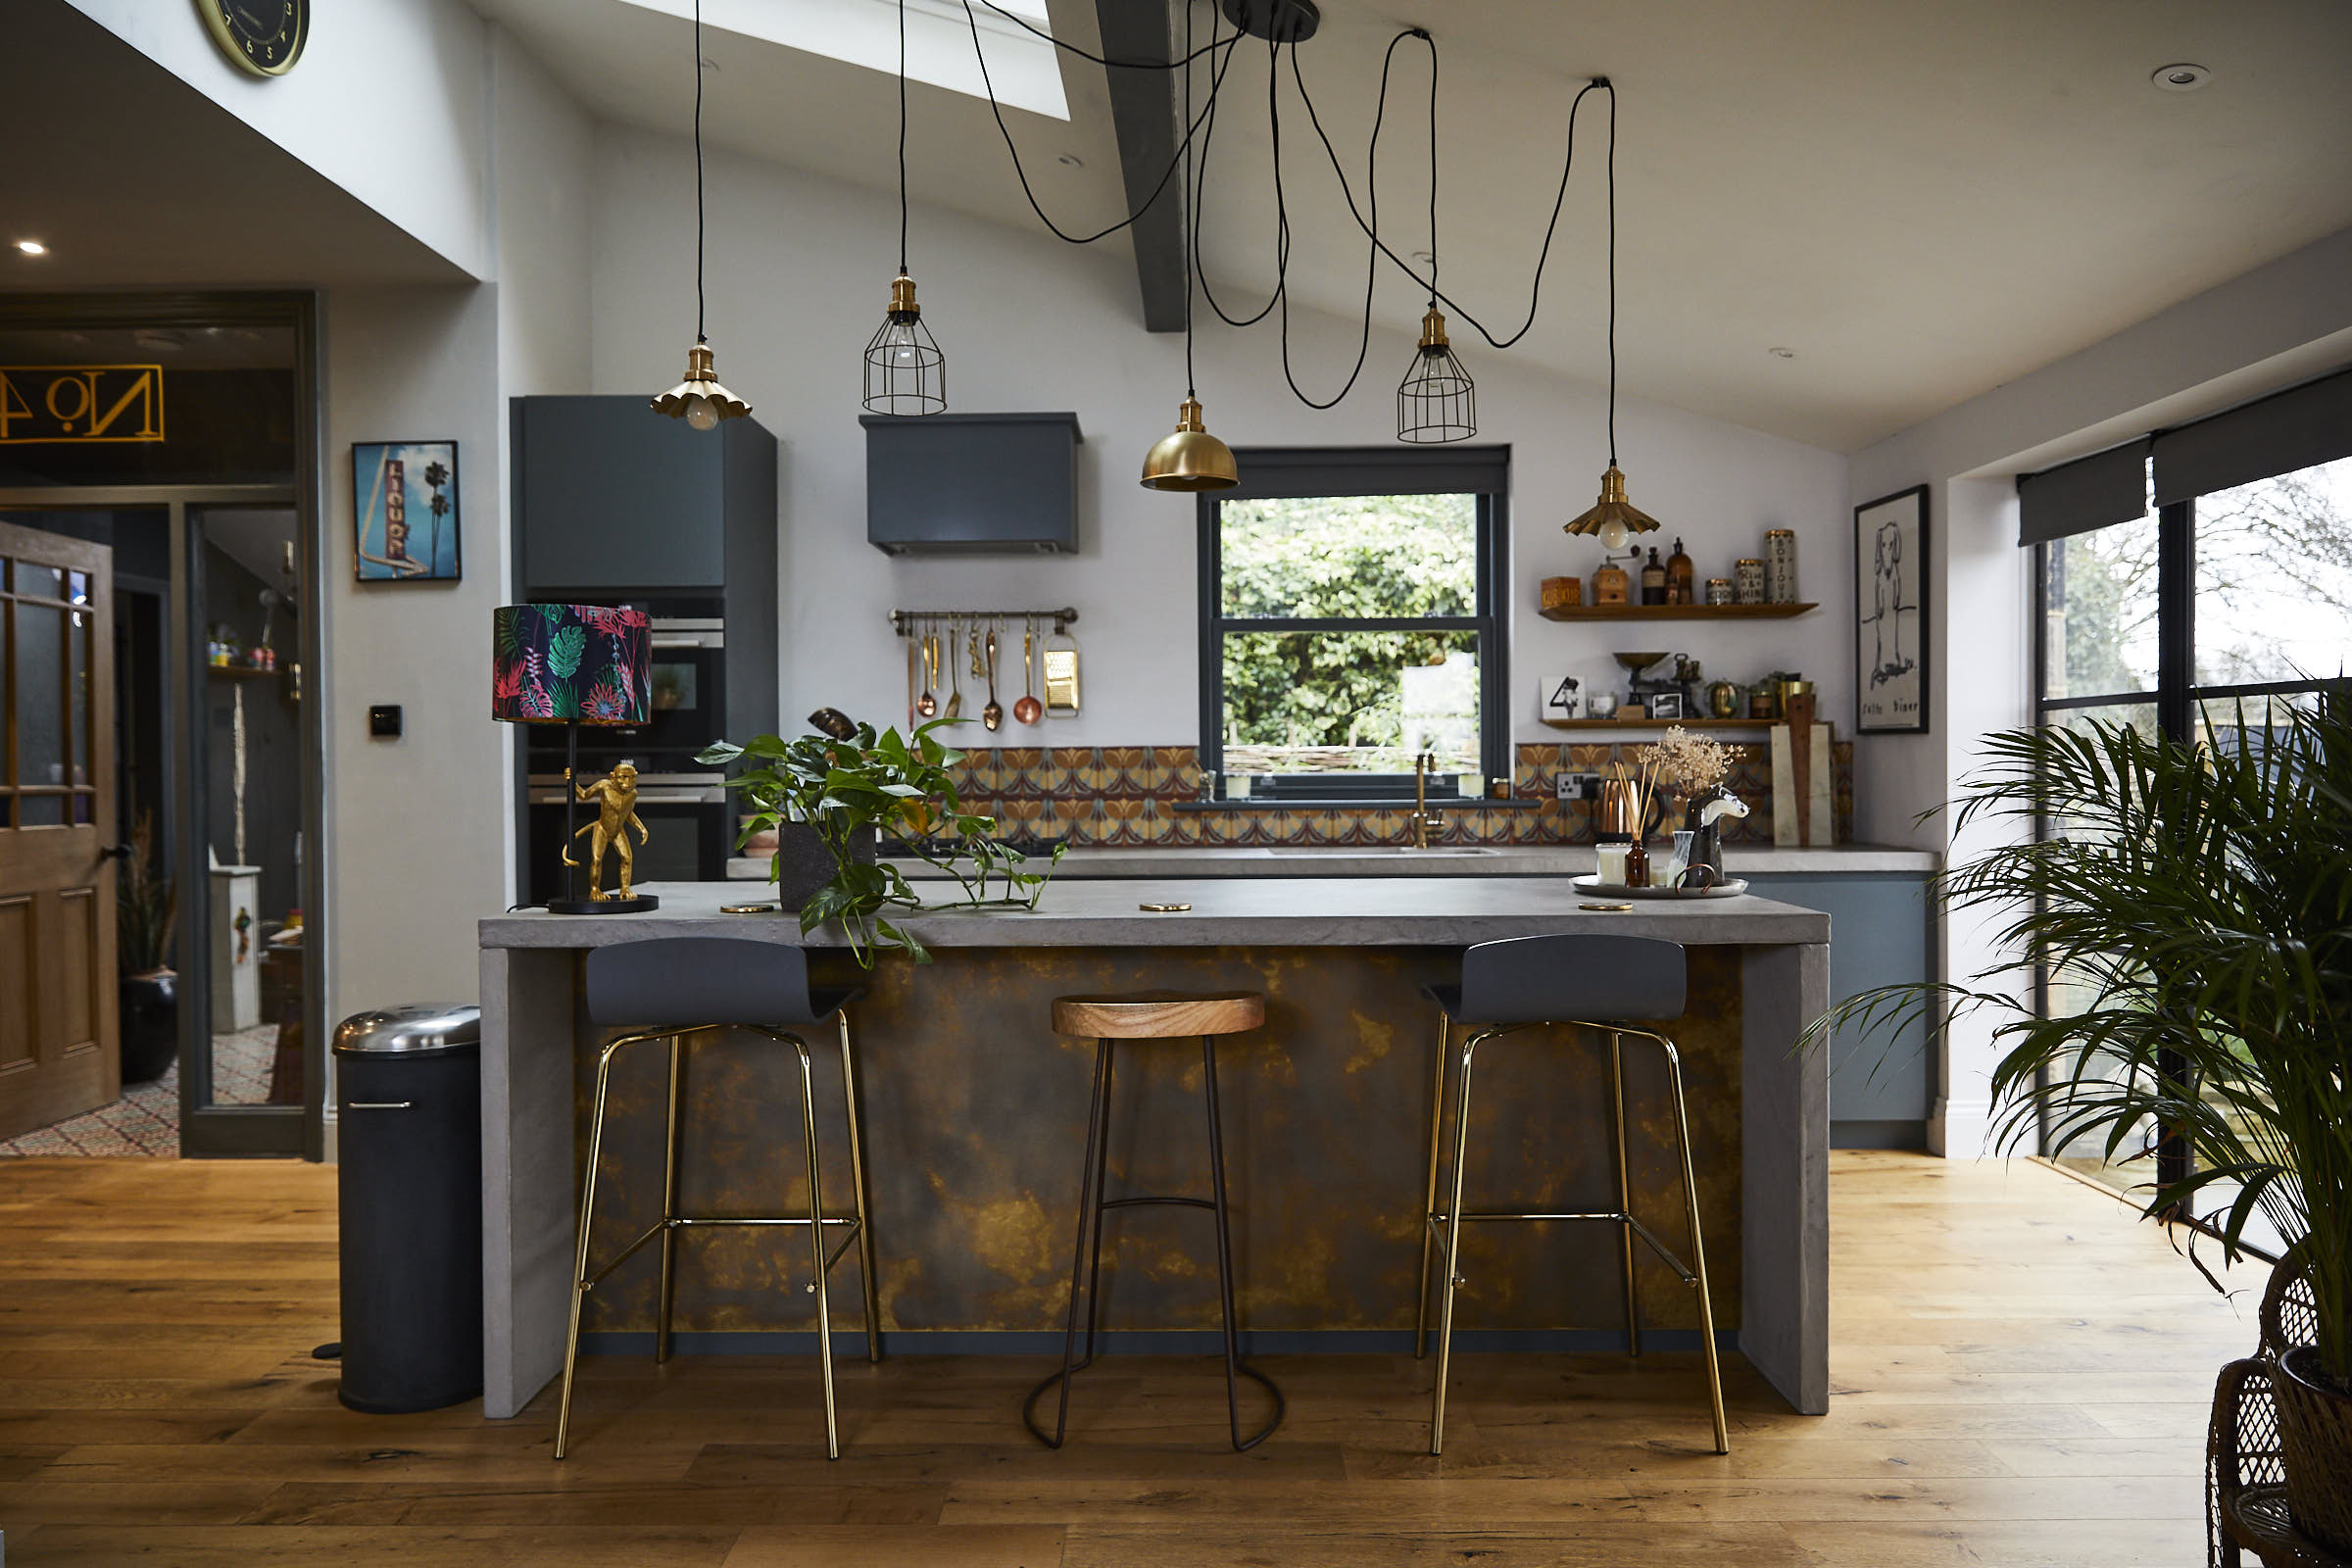 Bespoke Kitchen Project 29 - West Yorkshire | The Main Company